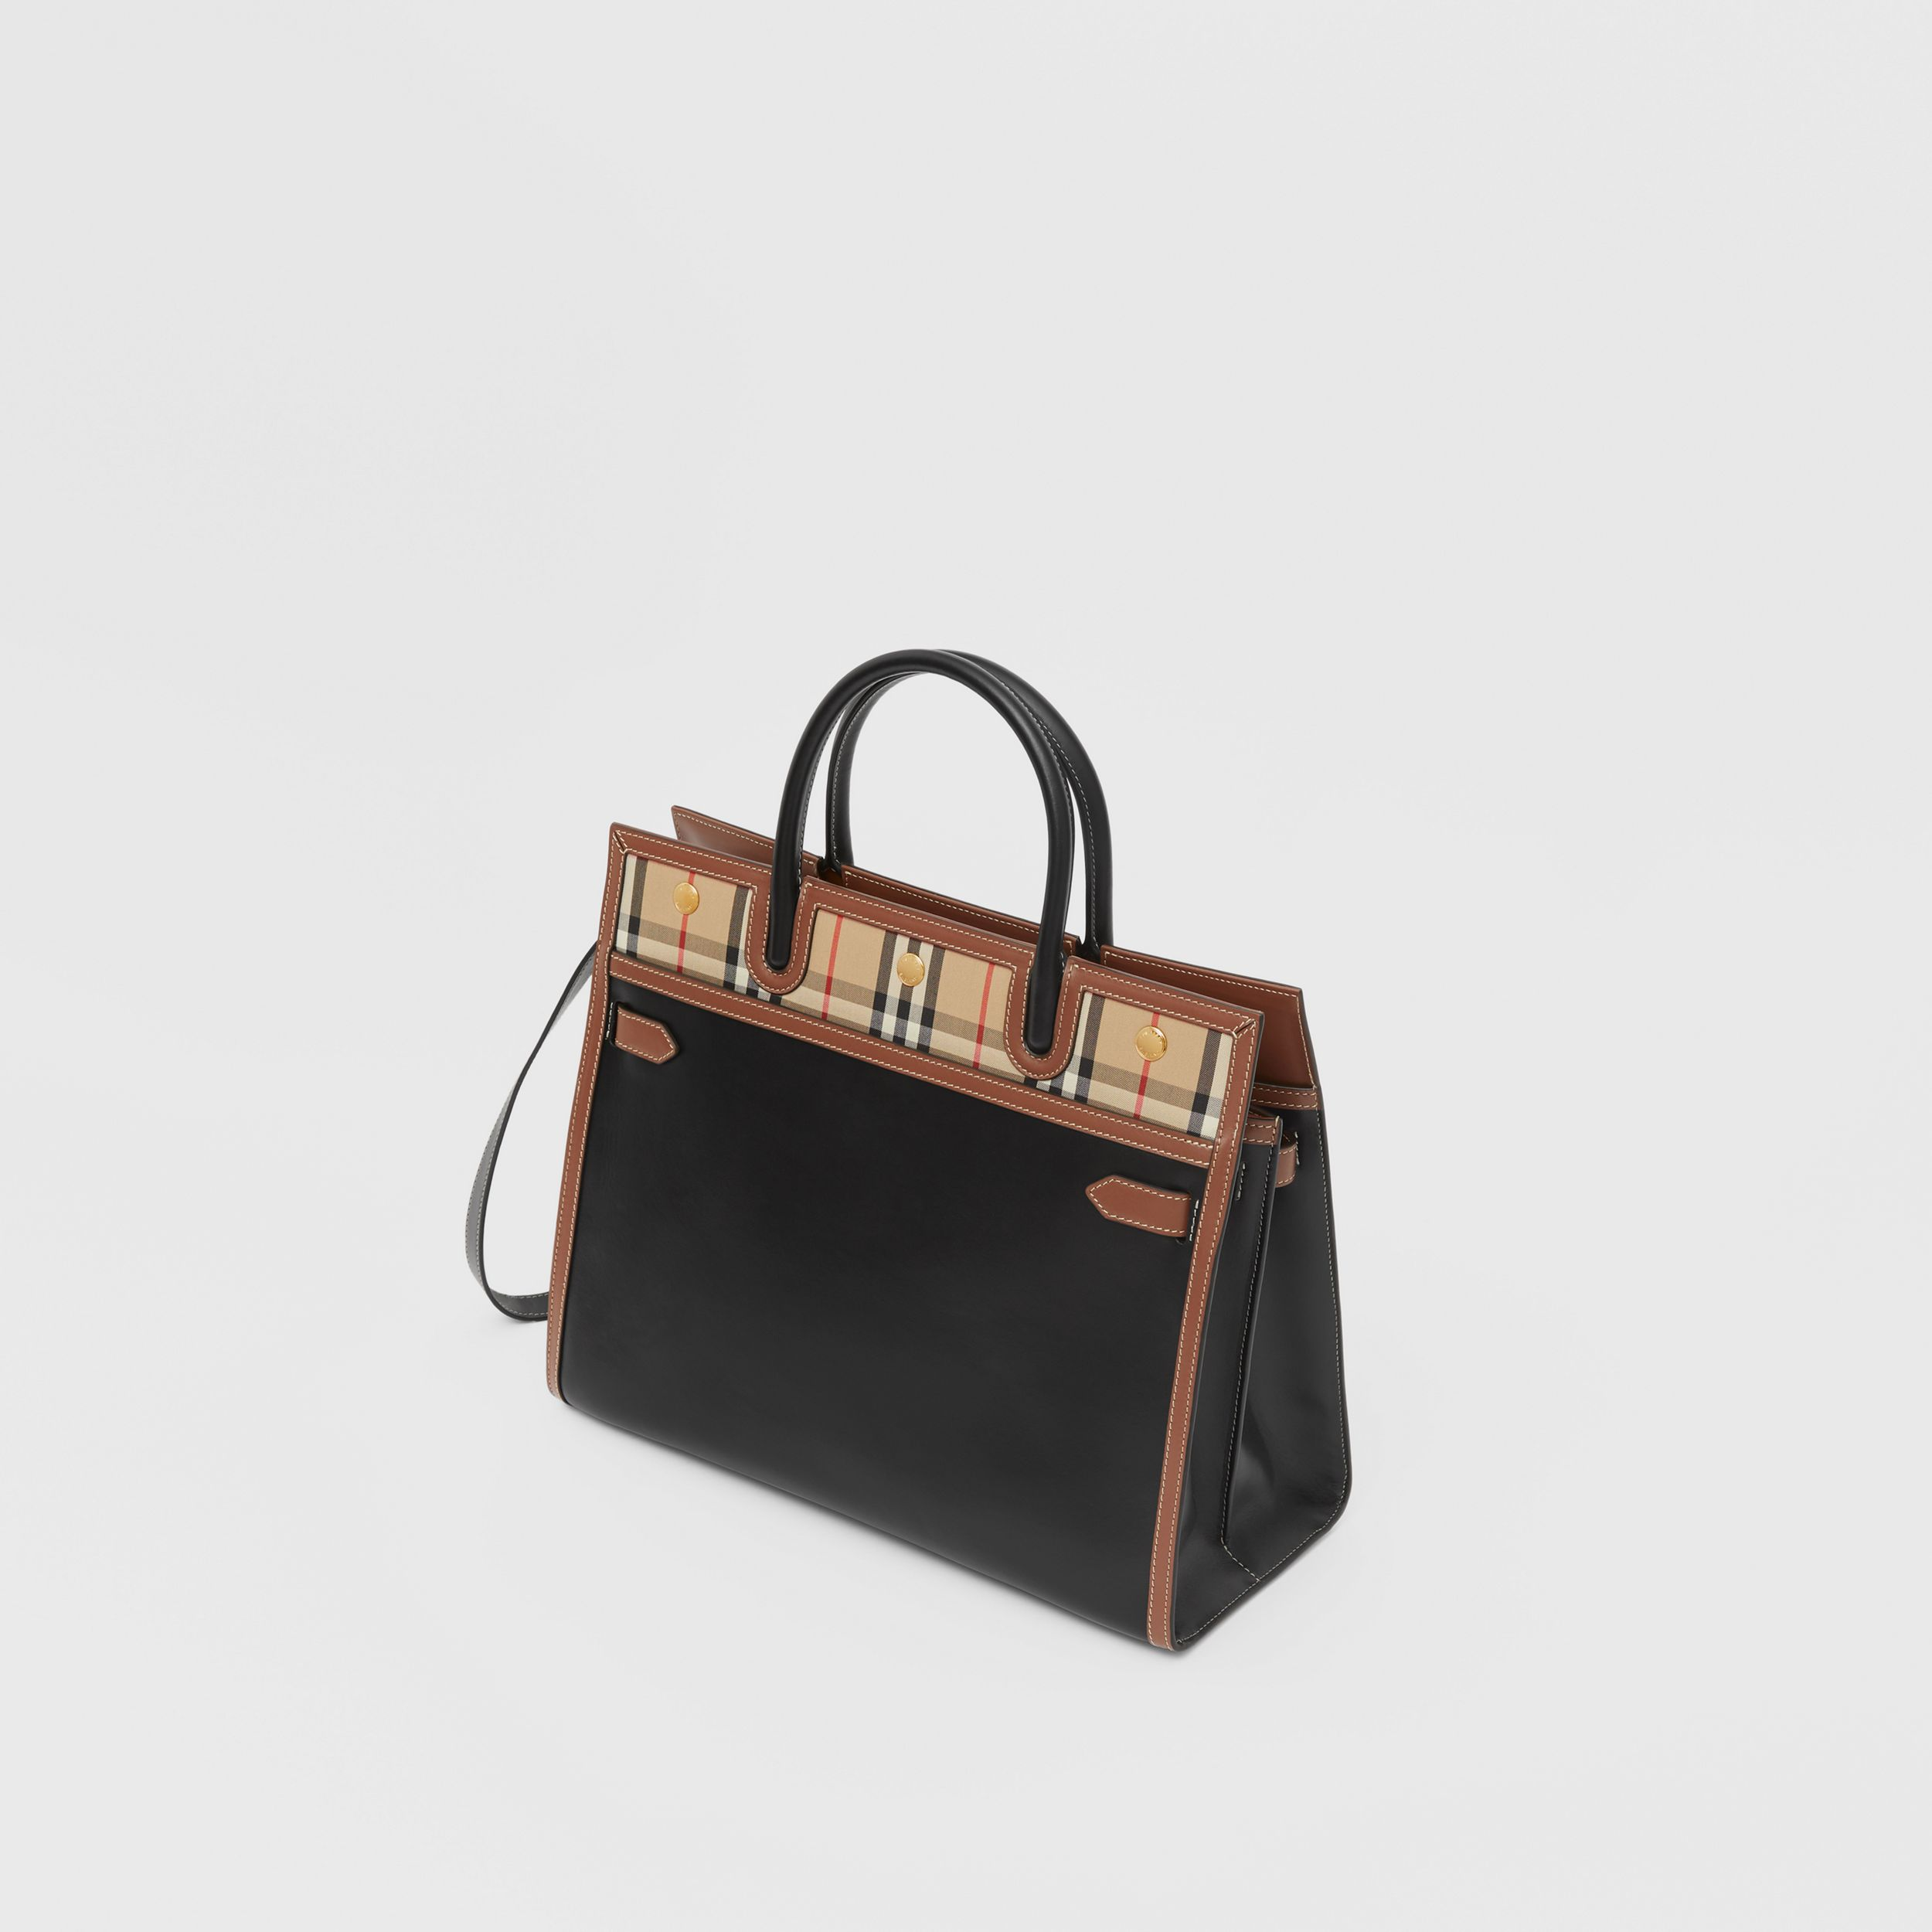 Mini Leather and Vintage Check Two-handle Title Bag in Black - Women | Burberry - 4